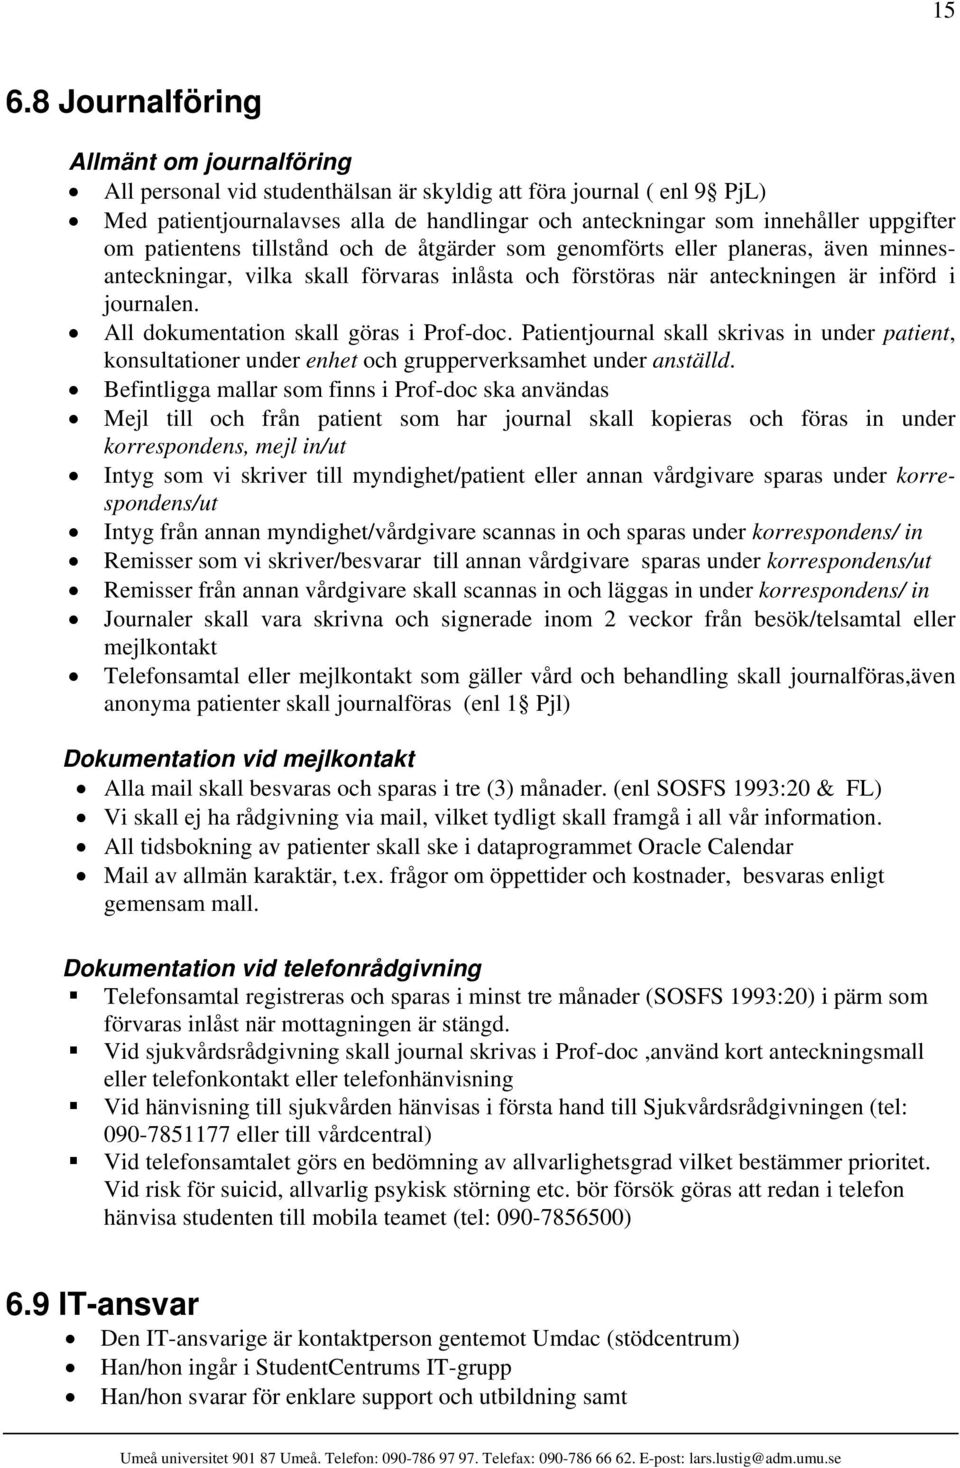 All dokumentation skall göras i Prof-doc. Patientjournal skall skrivas in under patient, konsultationer under enhet och grupperverksamhet under anställd.